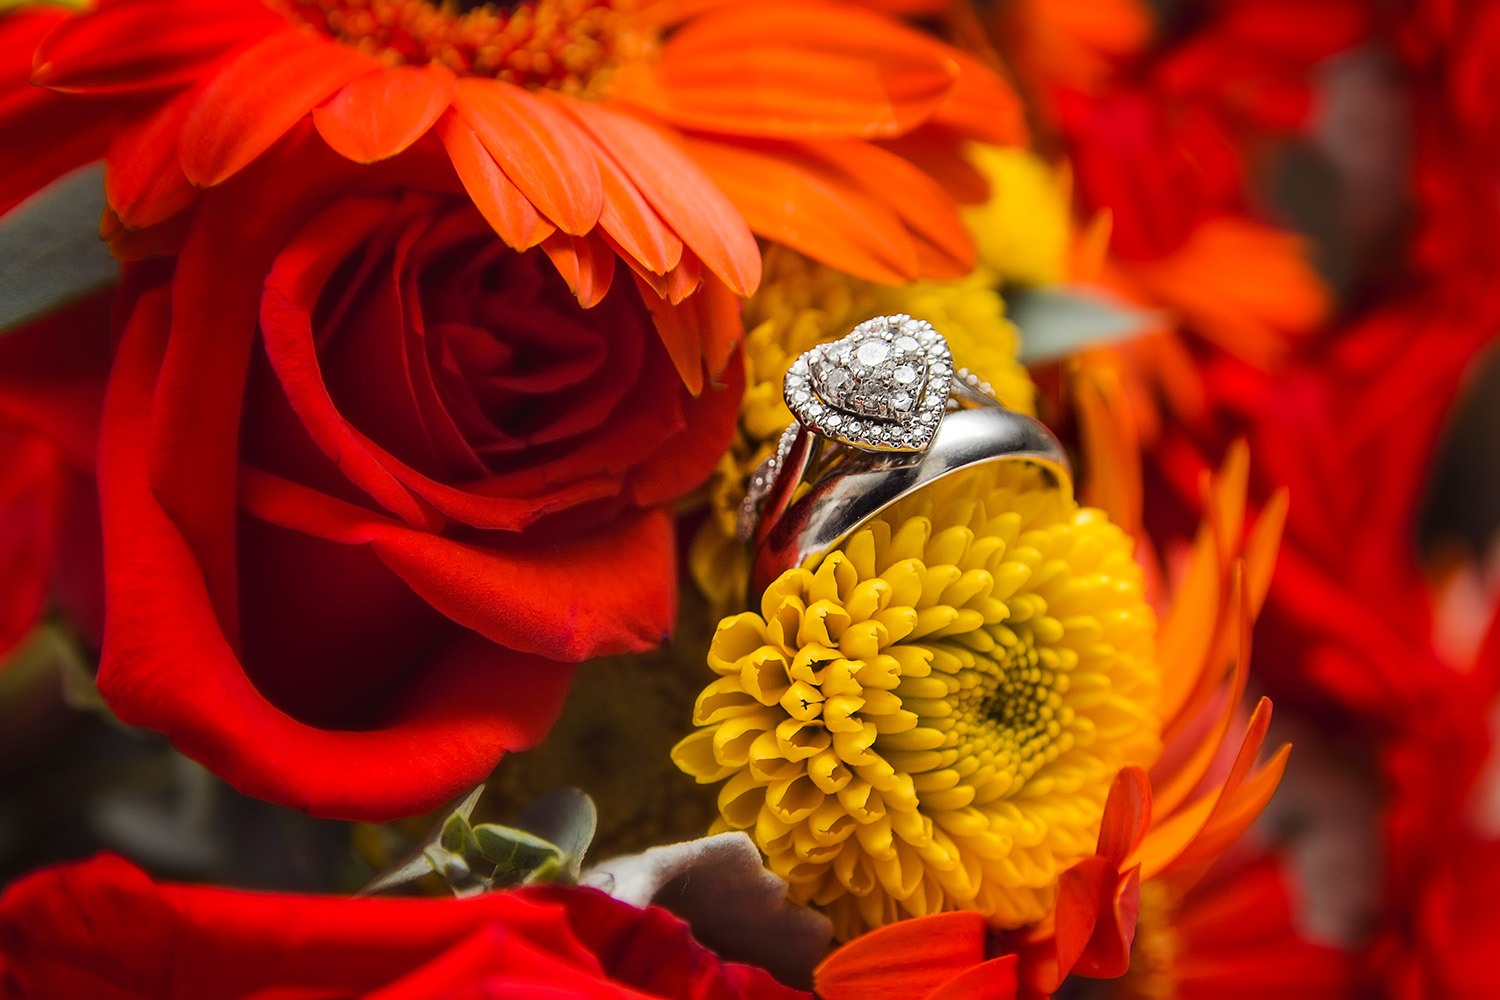 Red and orange bridal bouquet with silver heart-shaped wedding ring and wedding band